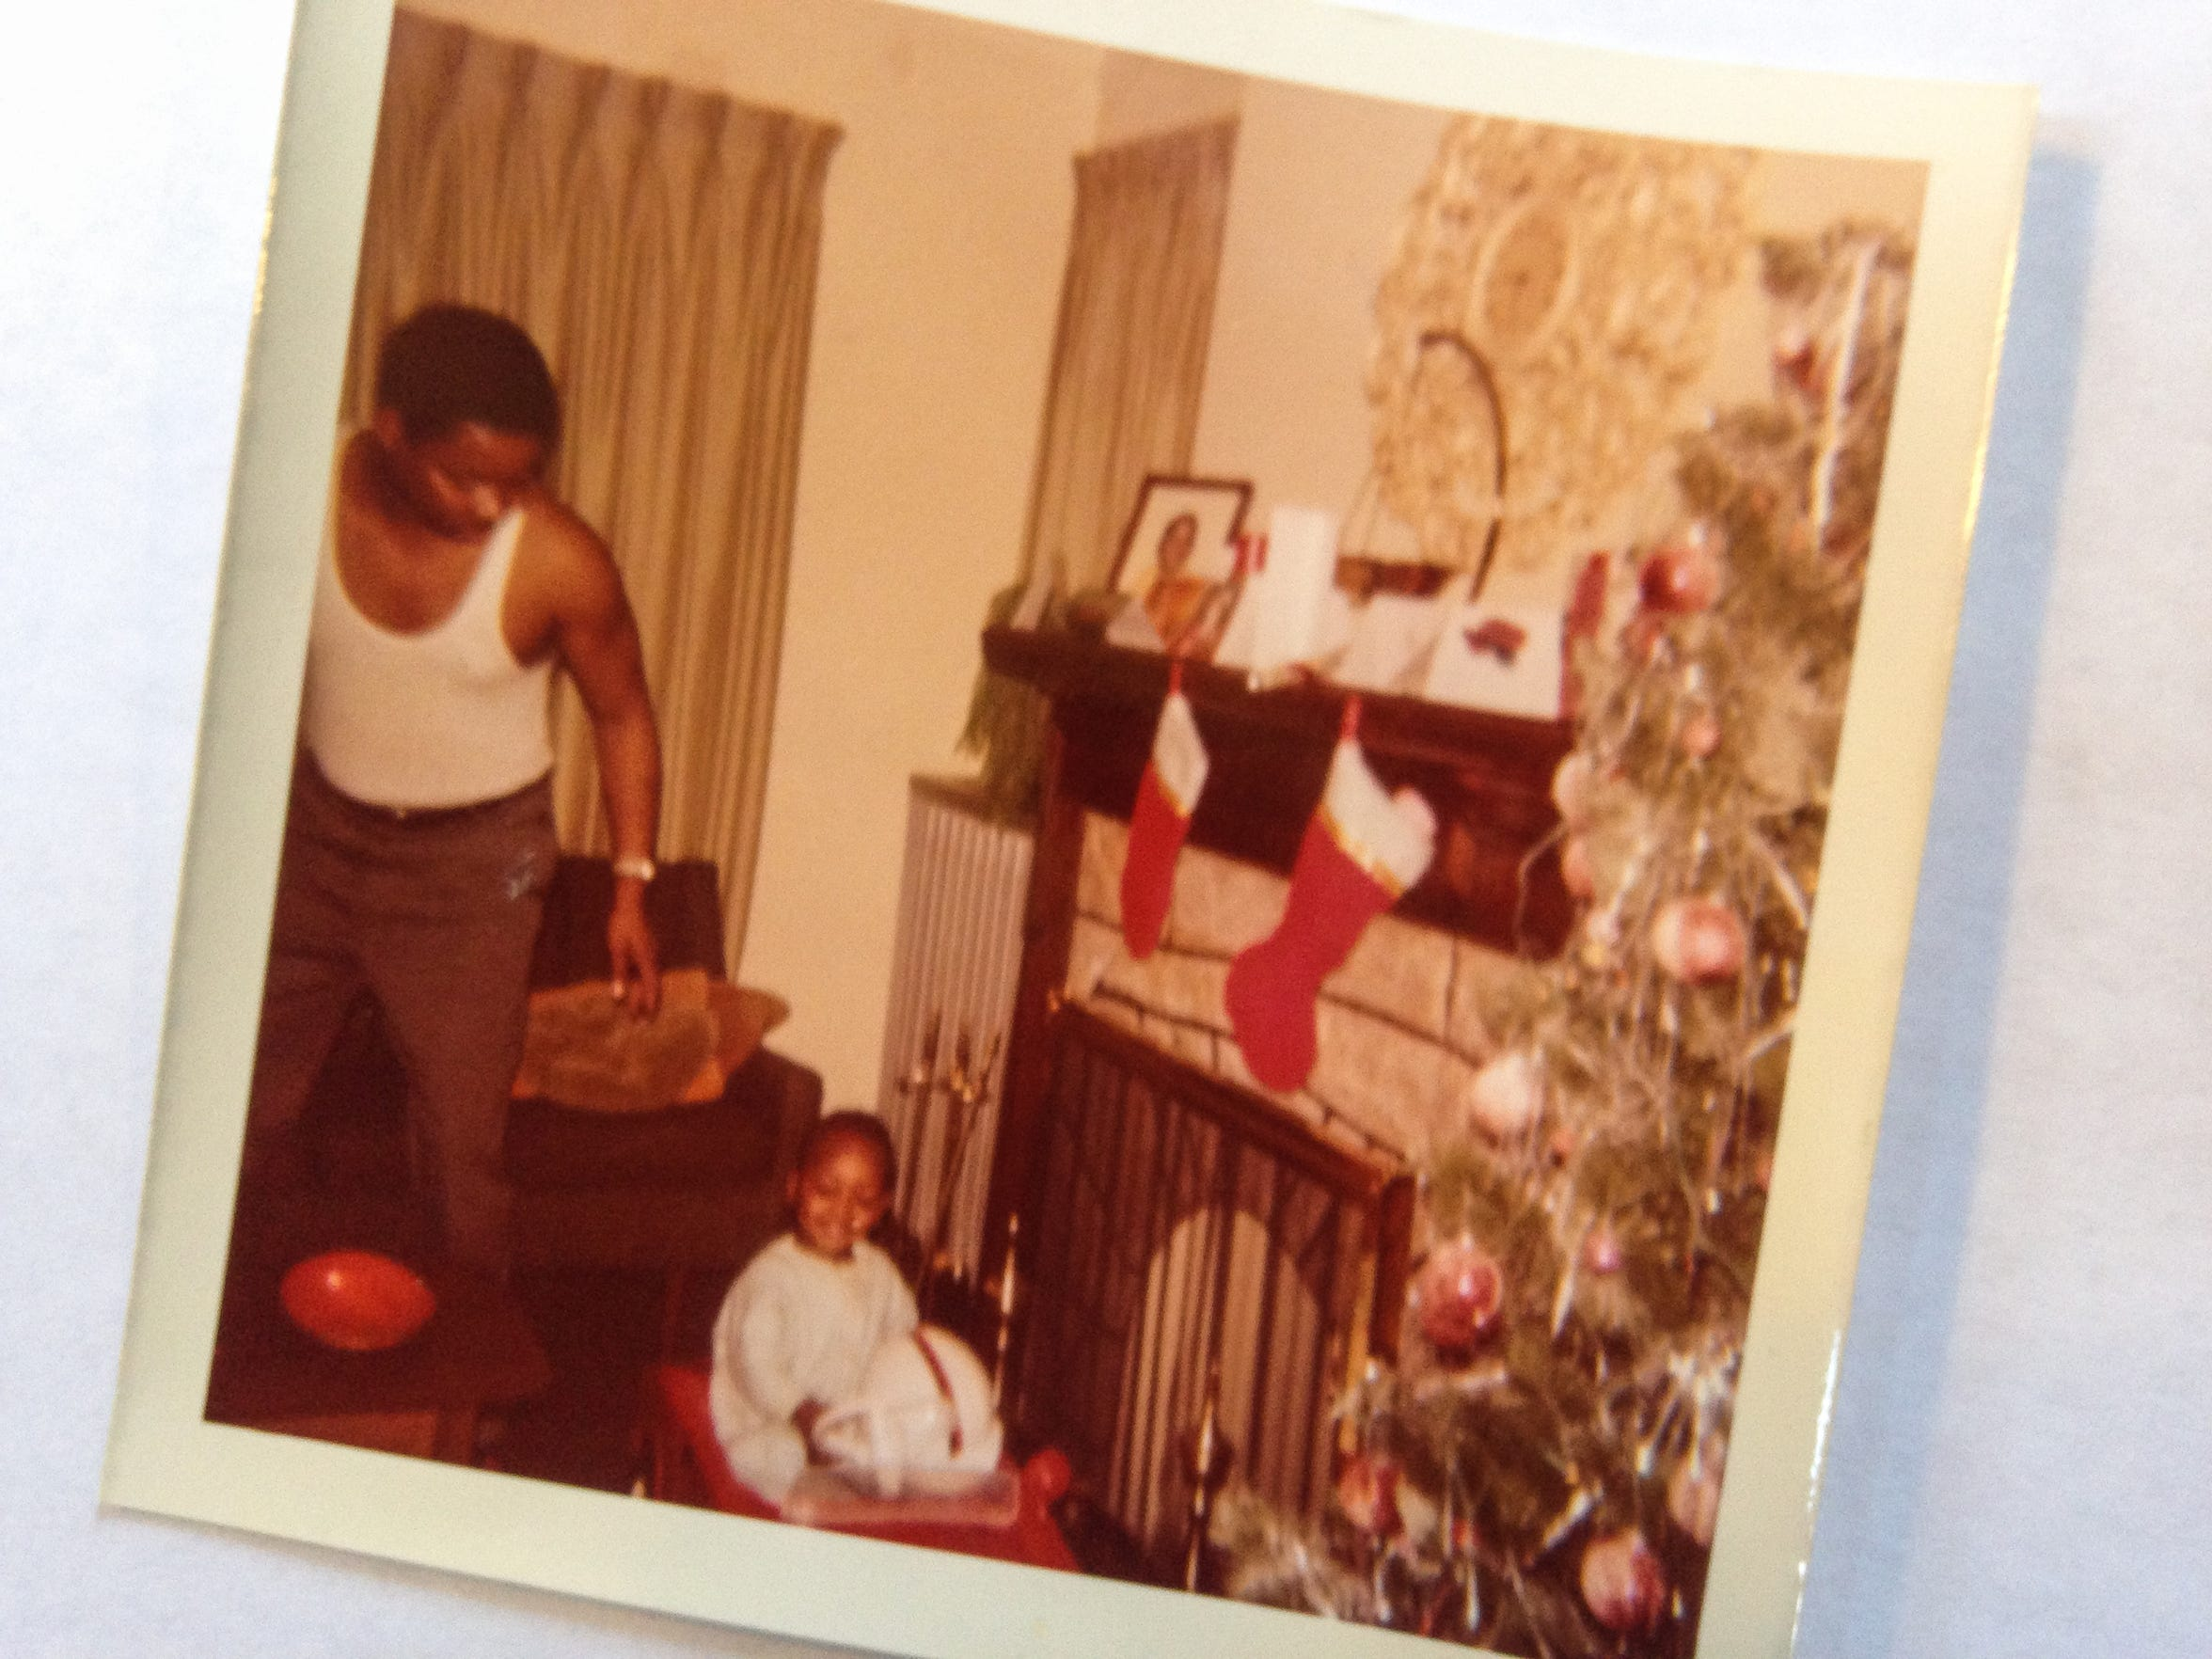 An early 1970s Christmas photo of Free Press Editorial Page Editor Stephen Henderson and his father, Mose Henderson, in the second-floor apartment of 7124 Tuxedo. The house is now abandoned and stripped. Henderson hopes to remake the house as a writers residence and literary center for the neighborhood.